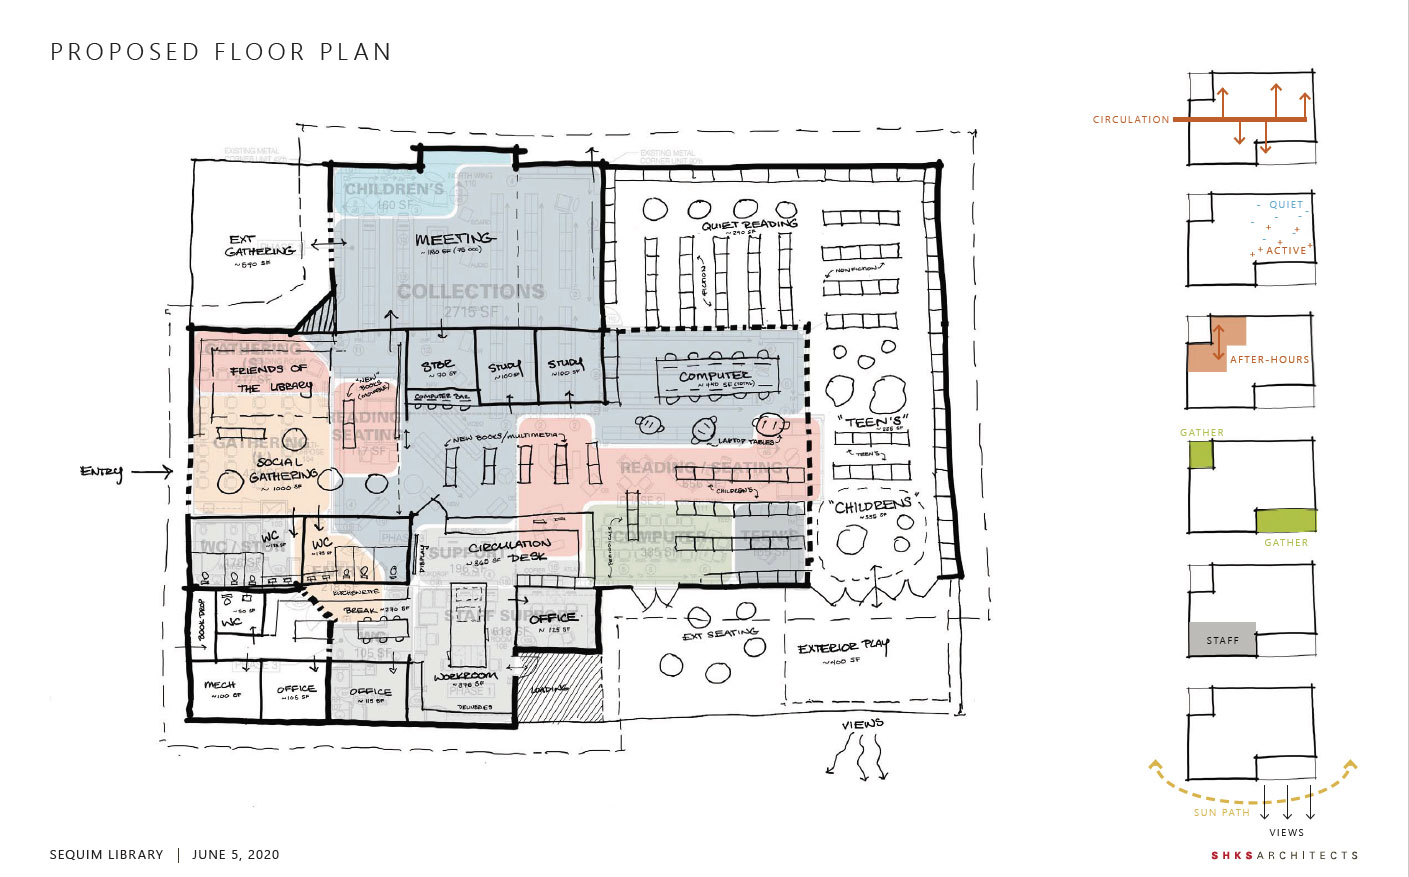 Sequim Library Project Proposed Floor Plan